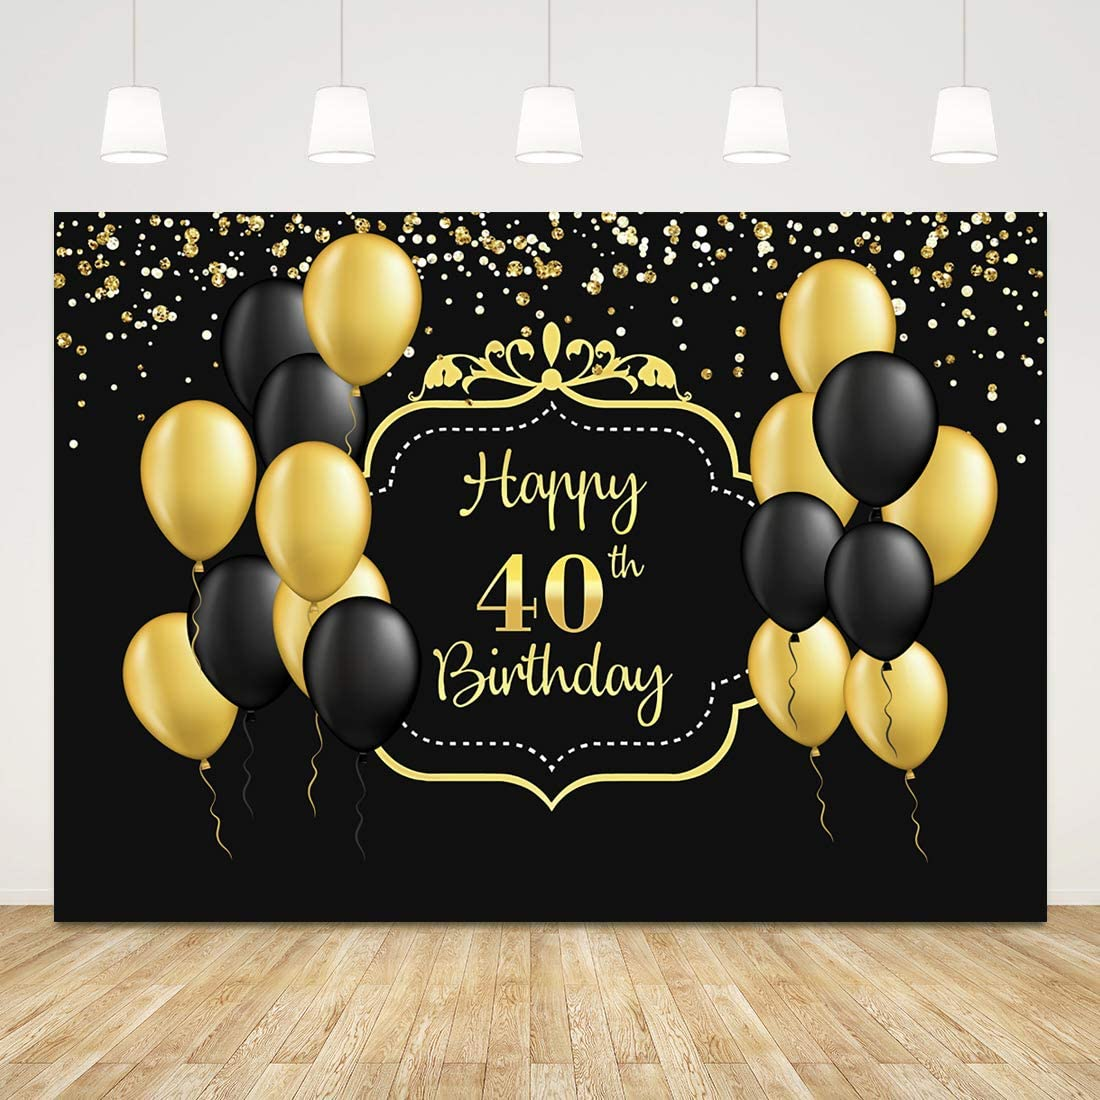 Happy 40th Birthday Backdrop for Men Women Black and Gold 40 Birthday Background 7x5ft Balloons 40th Birthday Backdrops for Party 40th Birthday Photo Props Forty Birthday Decorations Cake Table Decor